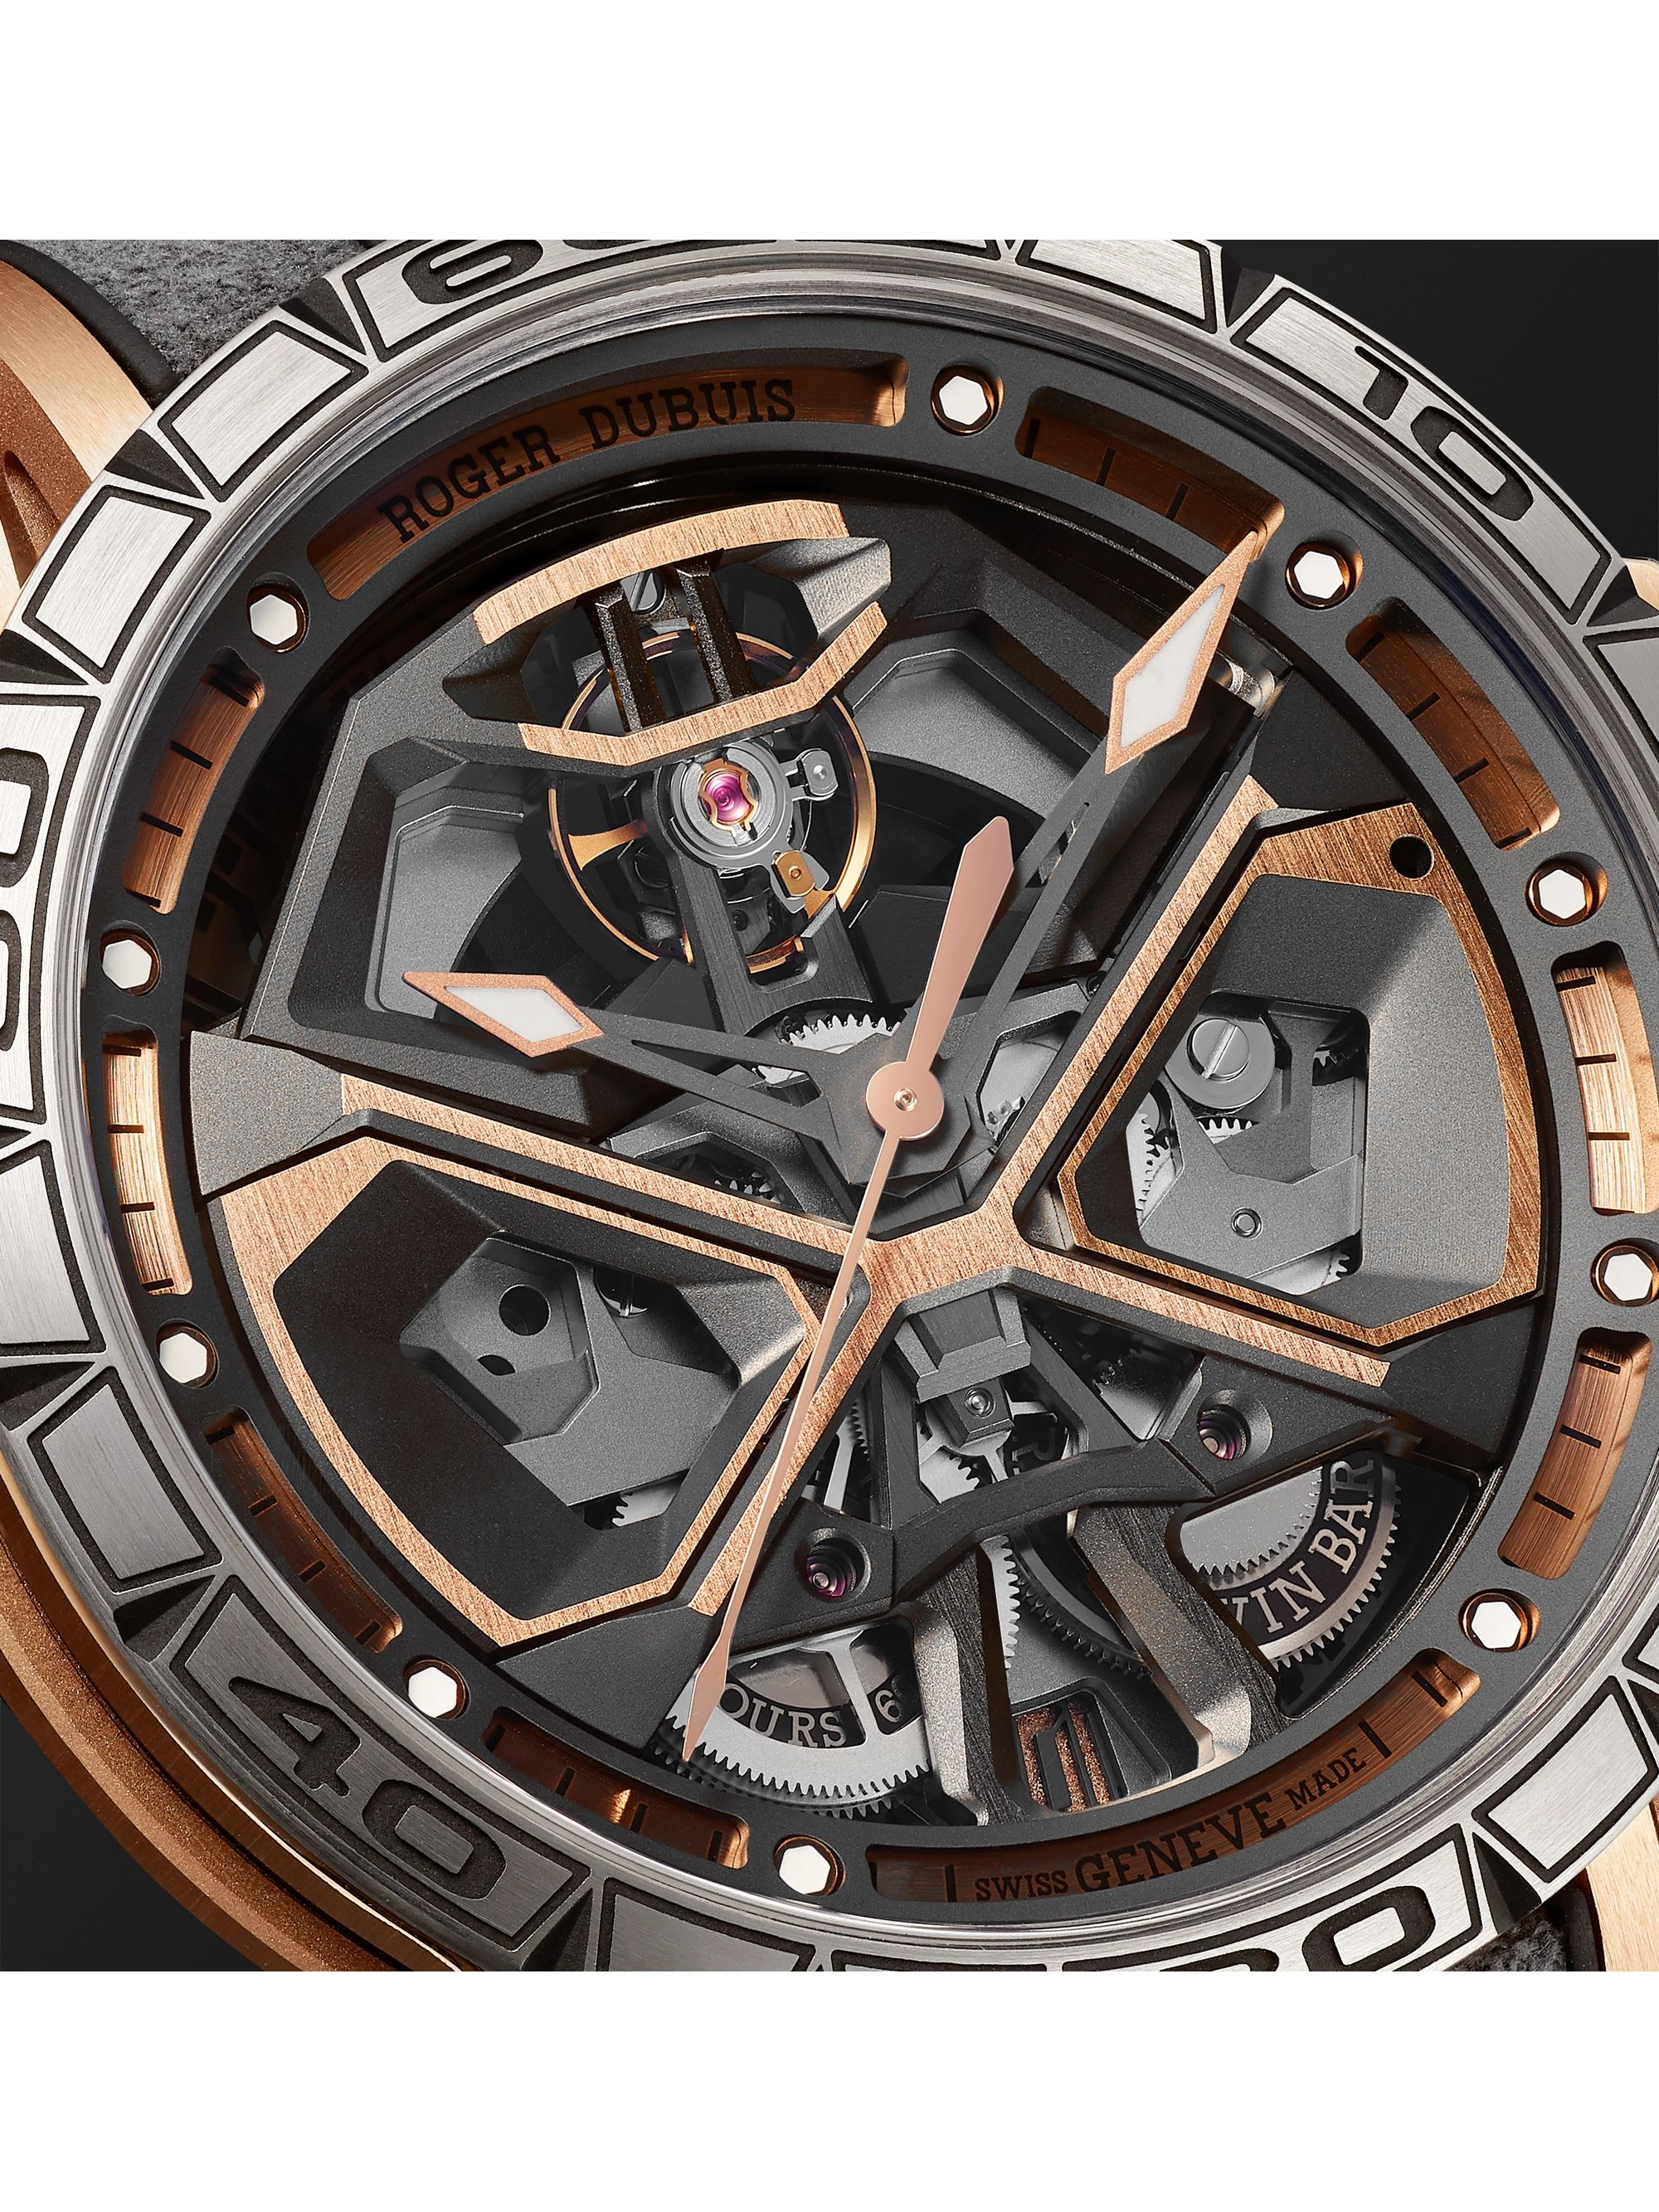 Roger Dubuis Excalibur Huracán Automatic Skeleton 45mm 18-Karat Pink Gold, Titanium and Rubber Watch, Ref. No. RDDBEX0750